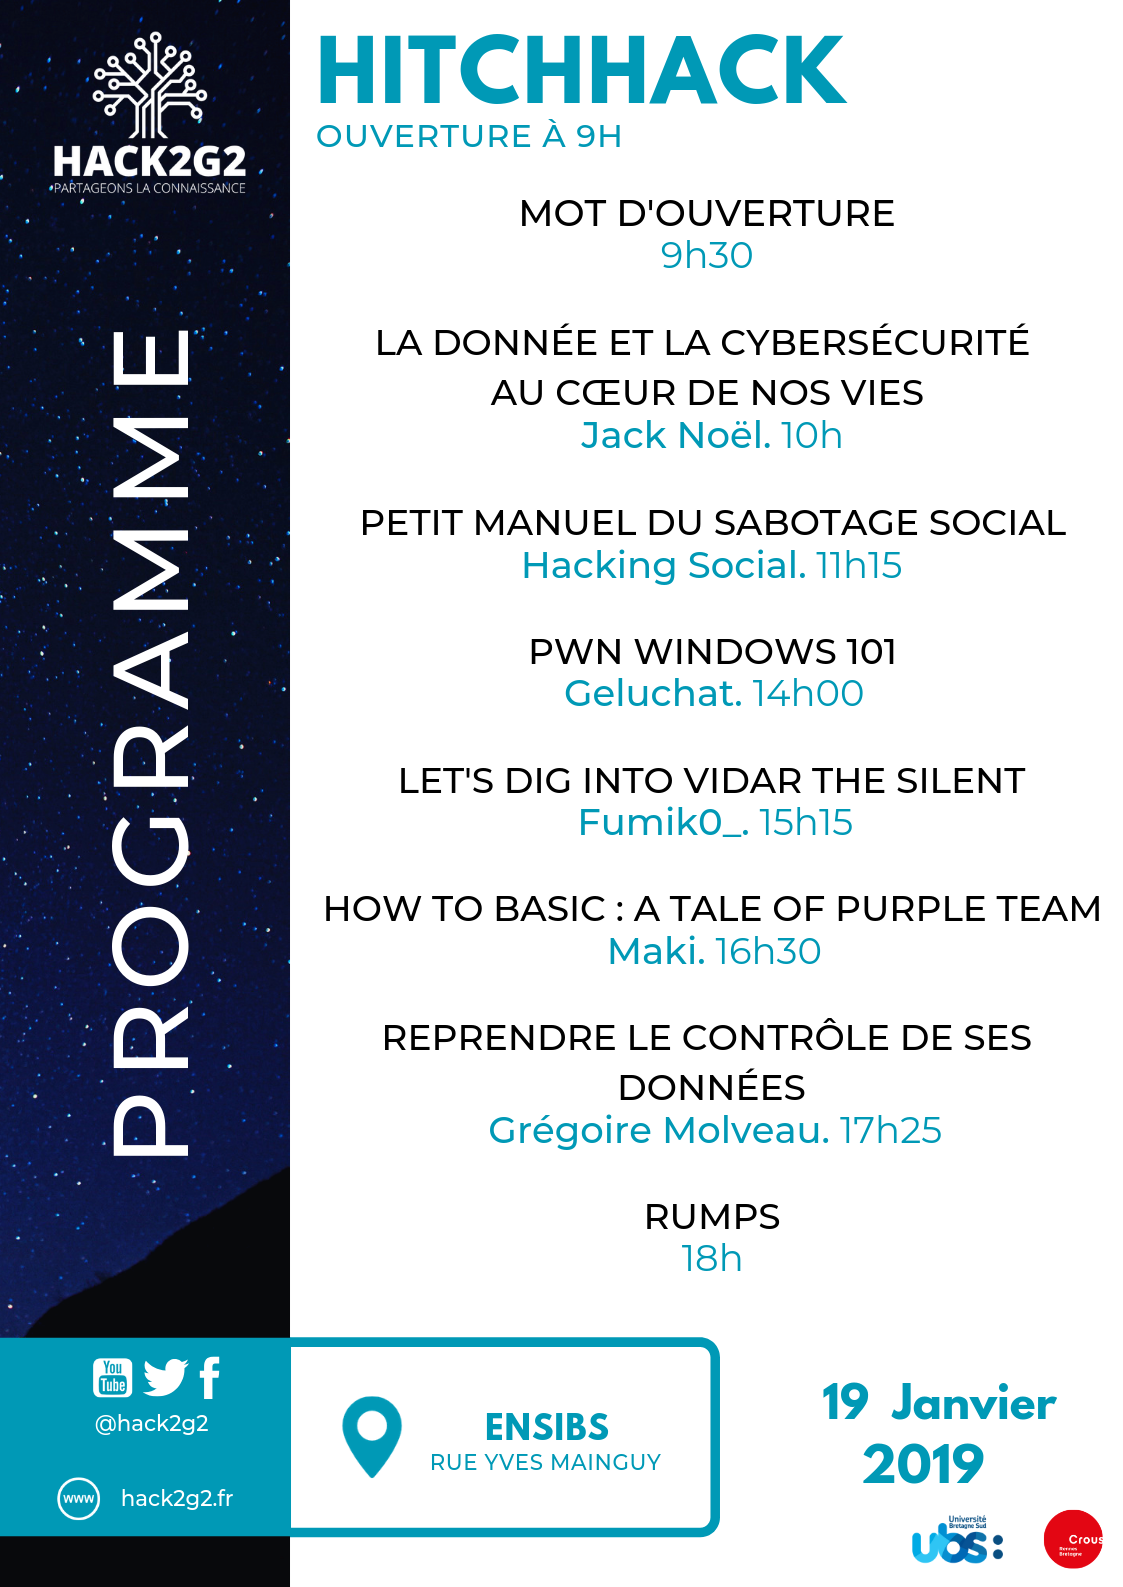 Voici le programme du Hitch Hack 2019